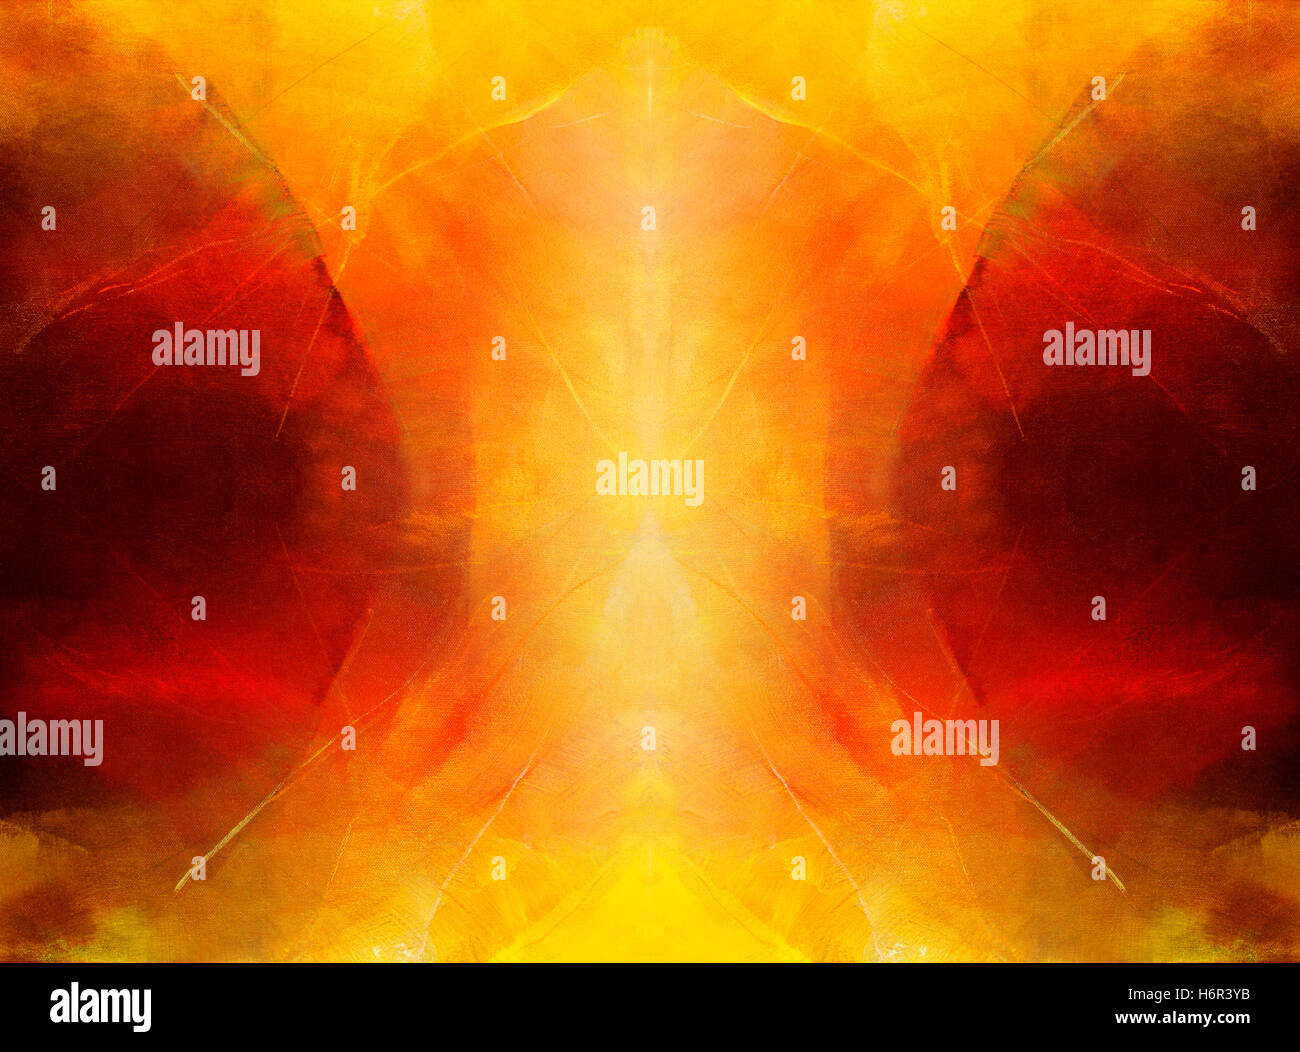 abstract background symmetric - Stock Image